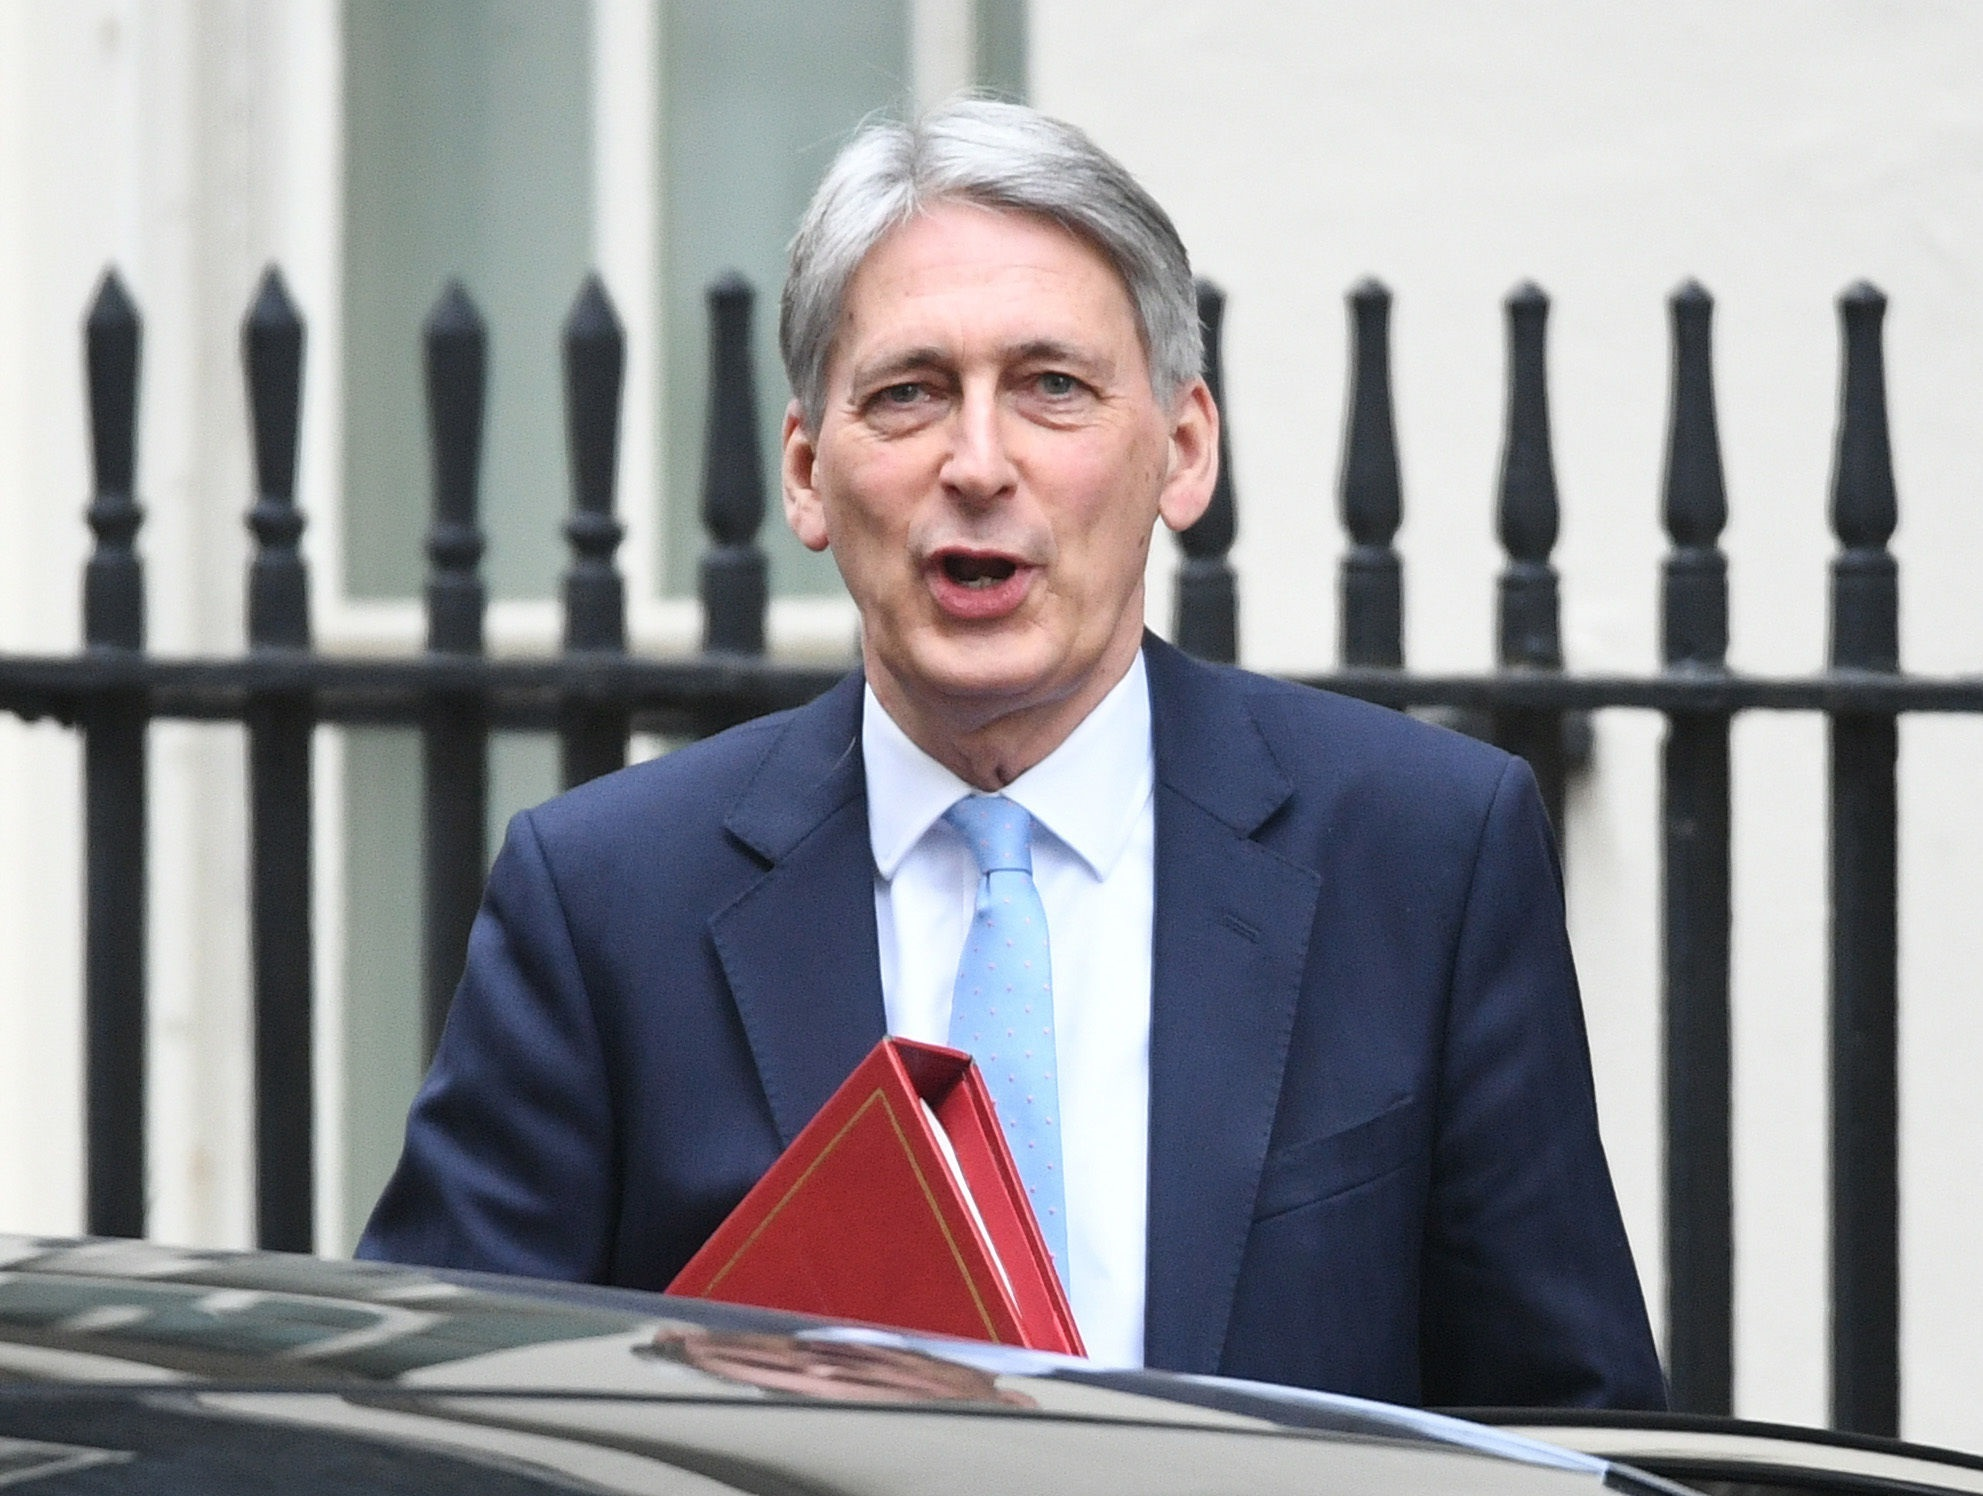 Fundamentally strong? Hammond accepts Brexit uncertainty hitting economy but says once deal done growth will improve